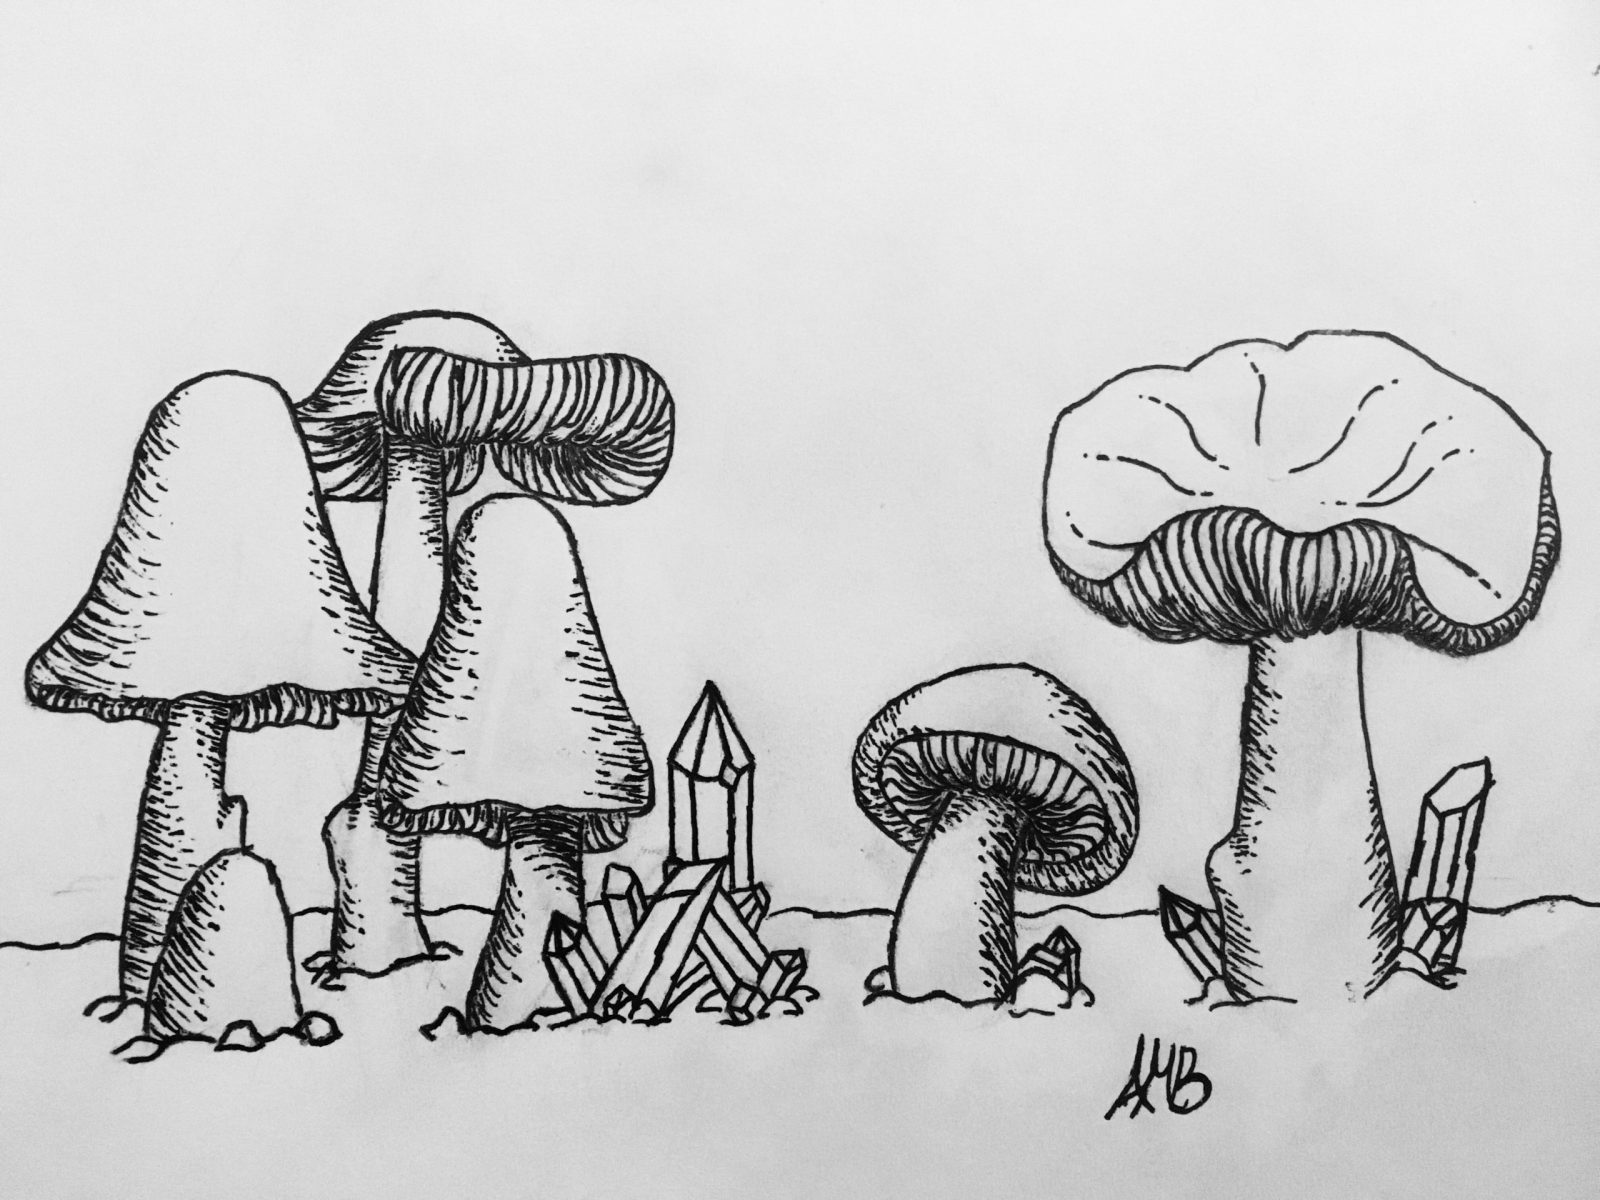 An ink drawing of mushrooms and crystals